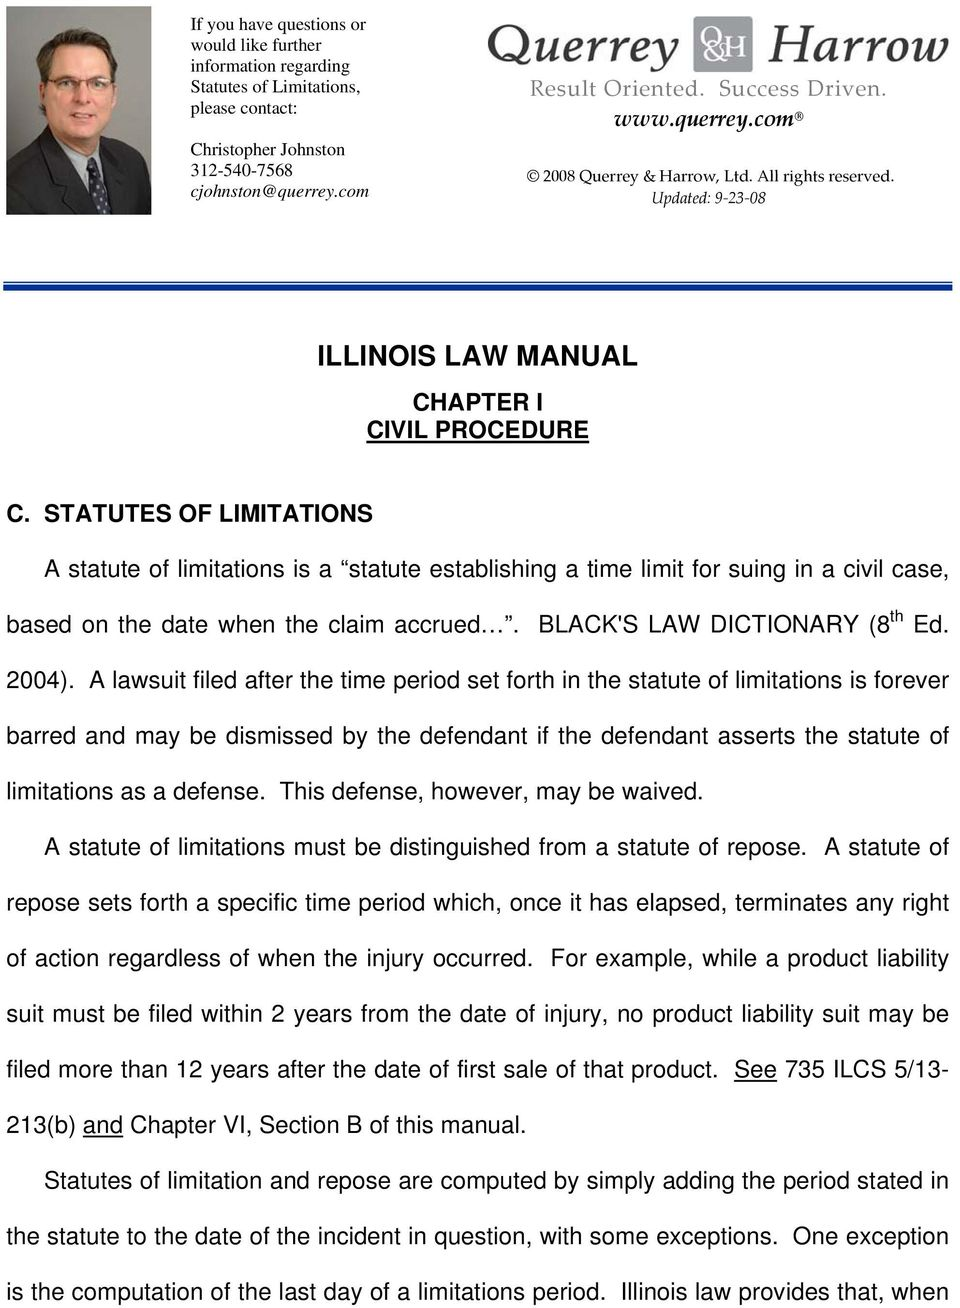 STATUTES OF LIMITATIONS A statute of limitations is a statute establishing a time limit for suing in a civil case, based on the date when the claim accrued. BLACK'S LAW DICTIONARY (8 th Ed. 2004).